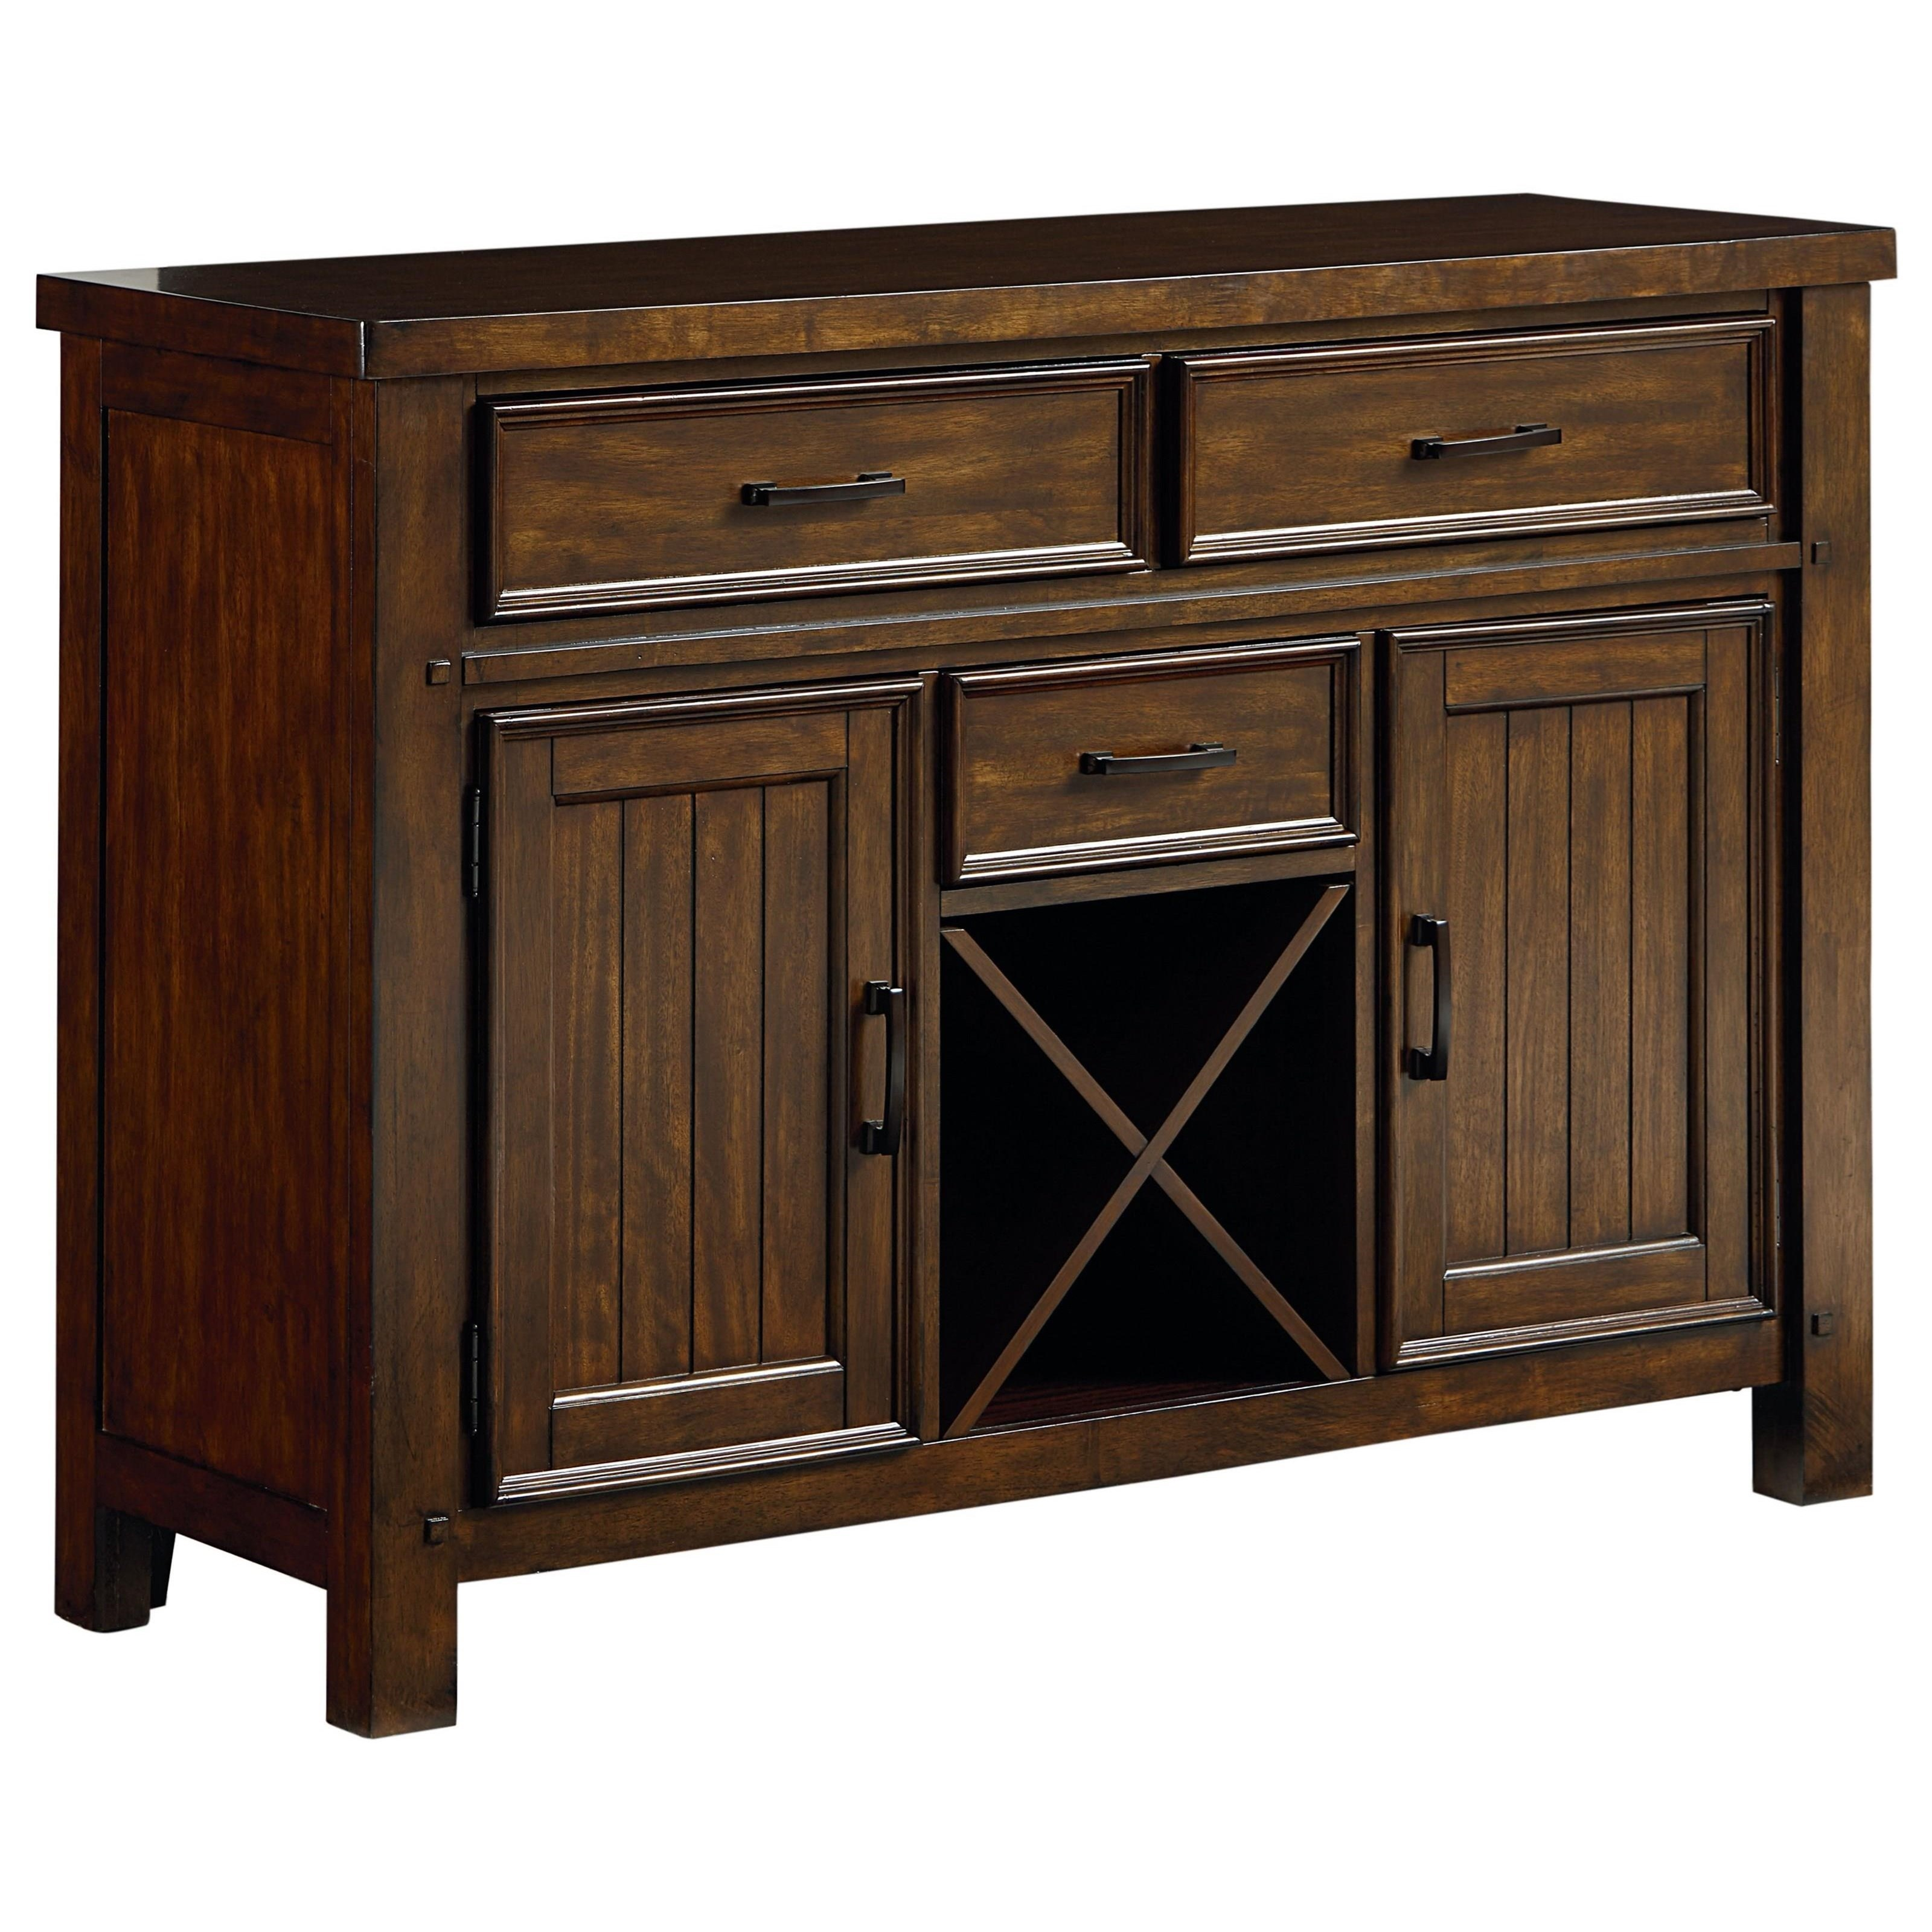 Standard Furniture Cameron Server  - Item Number: 14302